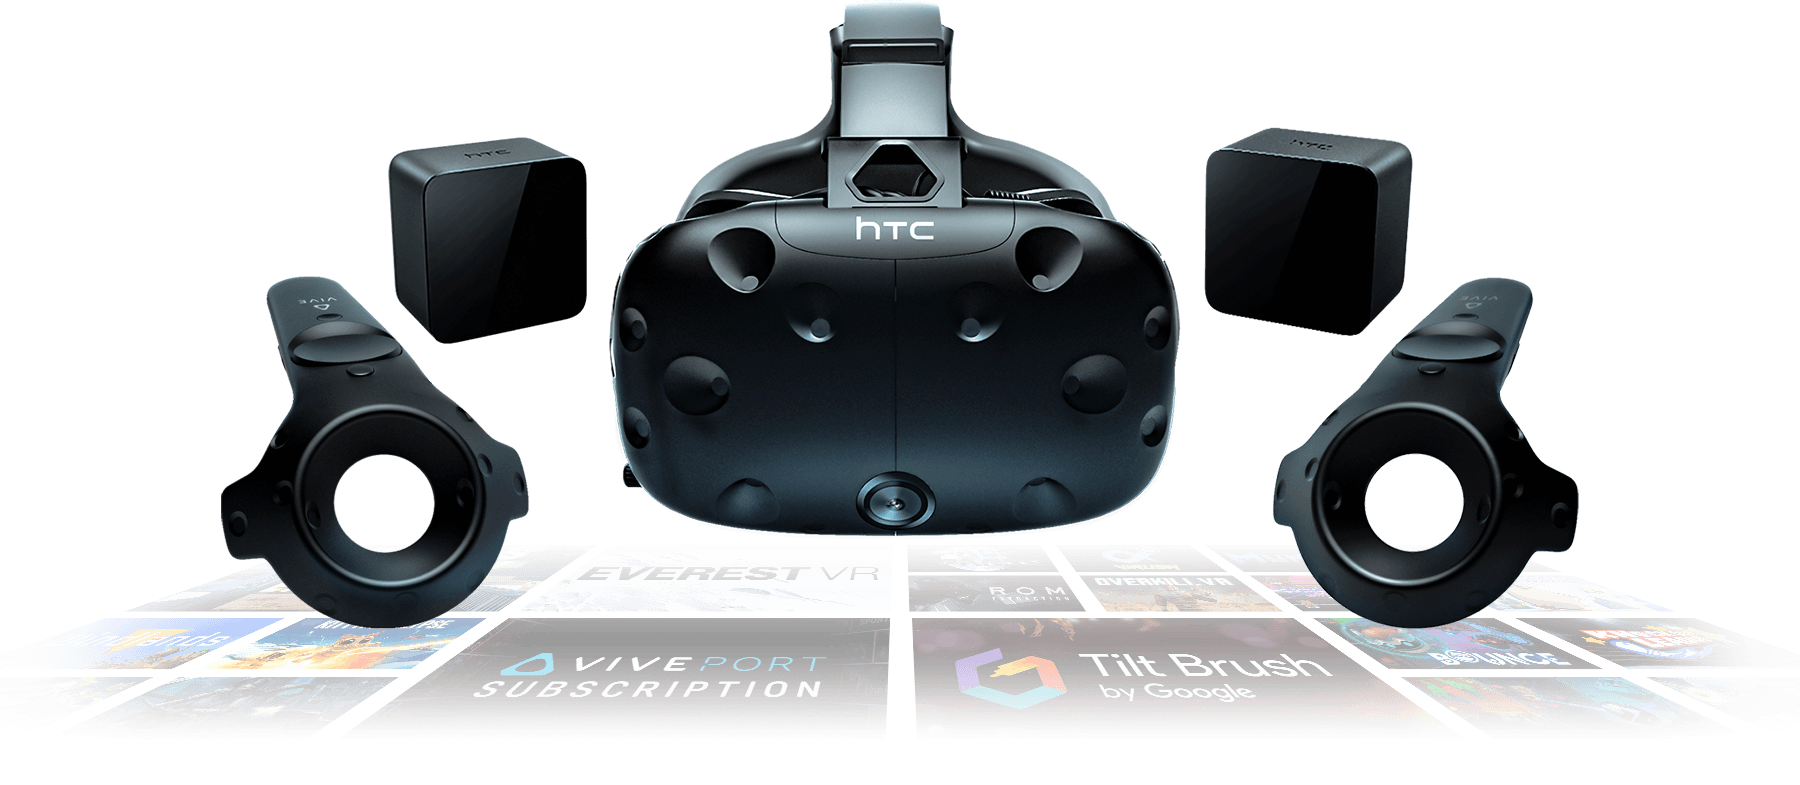 Image of the HTC Vive headset, surround by two base stations on the top and two motion controllers on the bottom